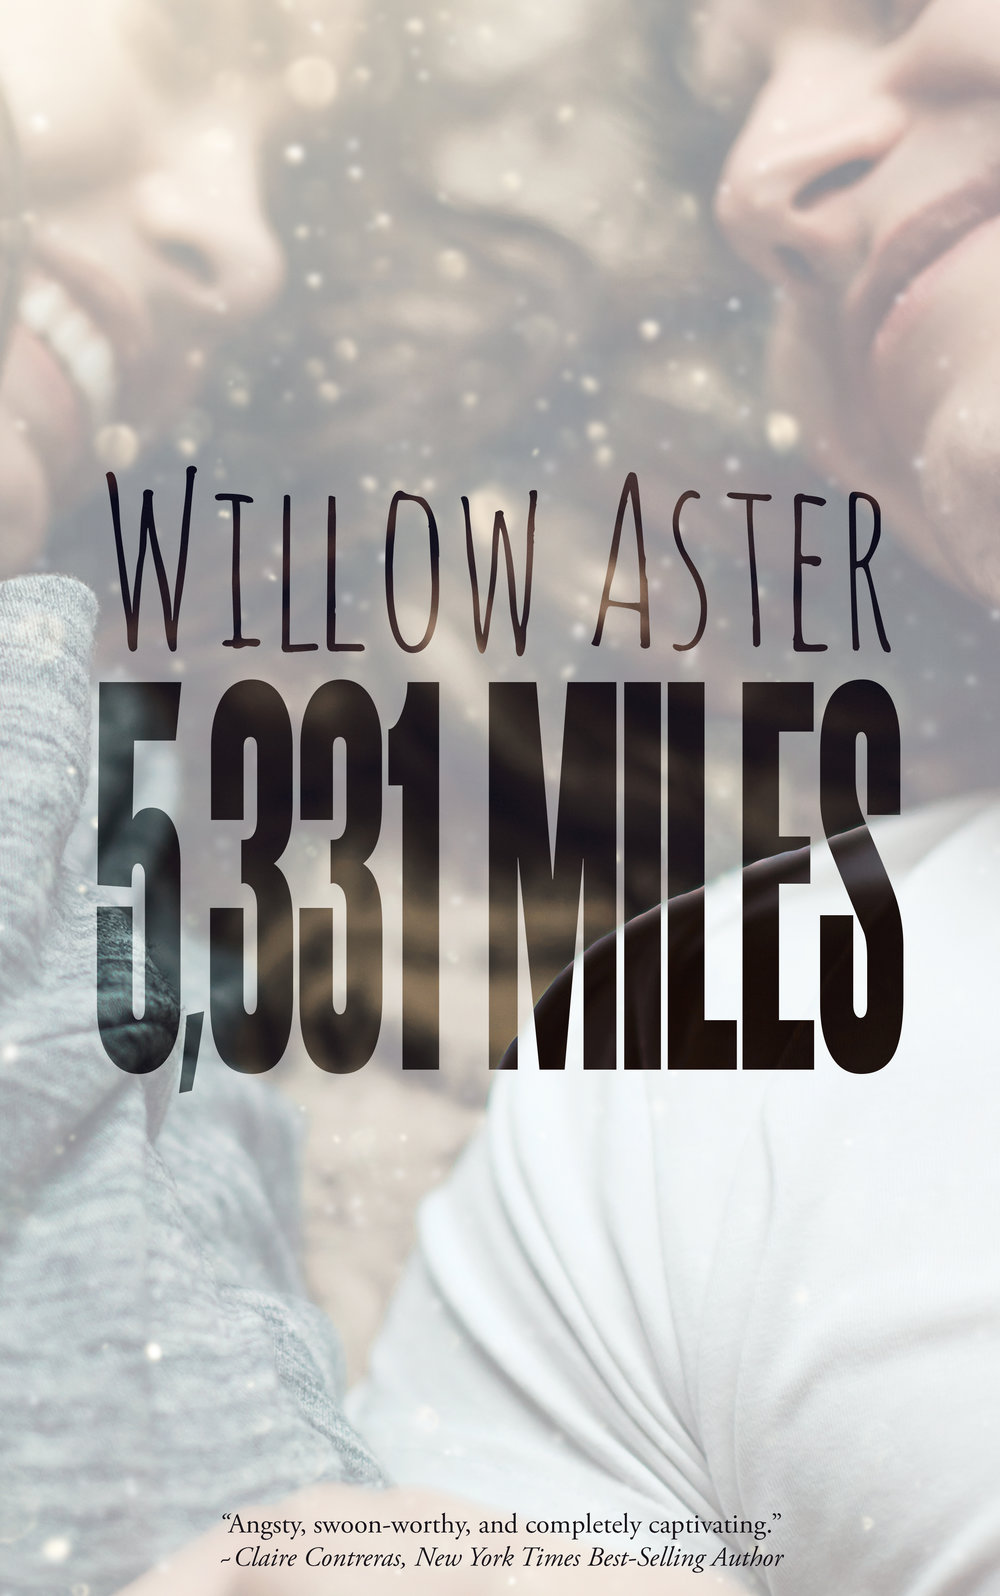 5,331 Miles Final FRONT-2.jpg